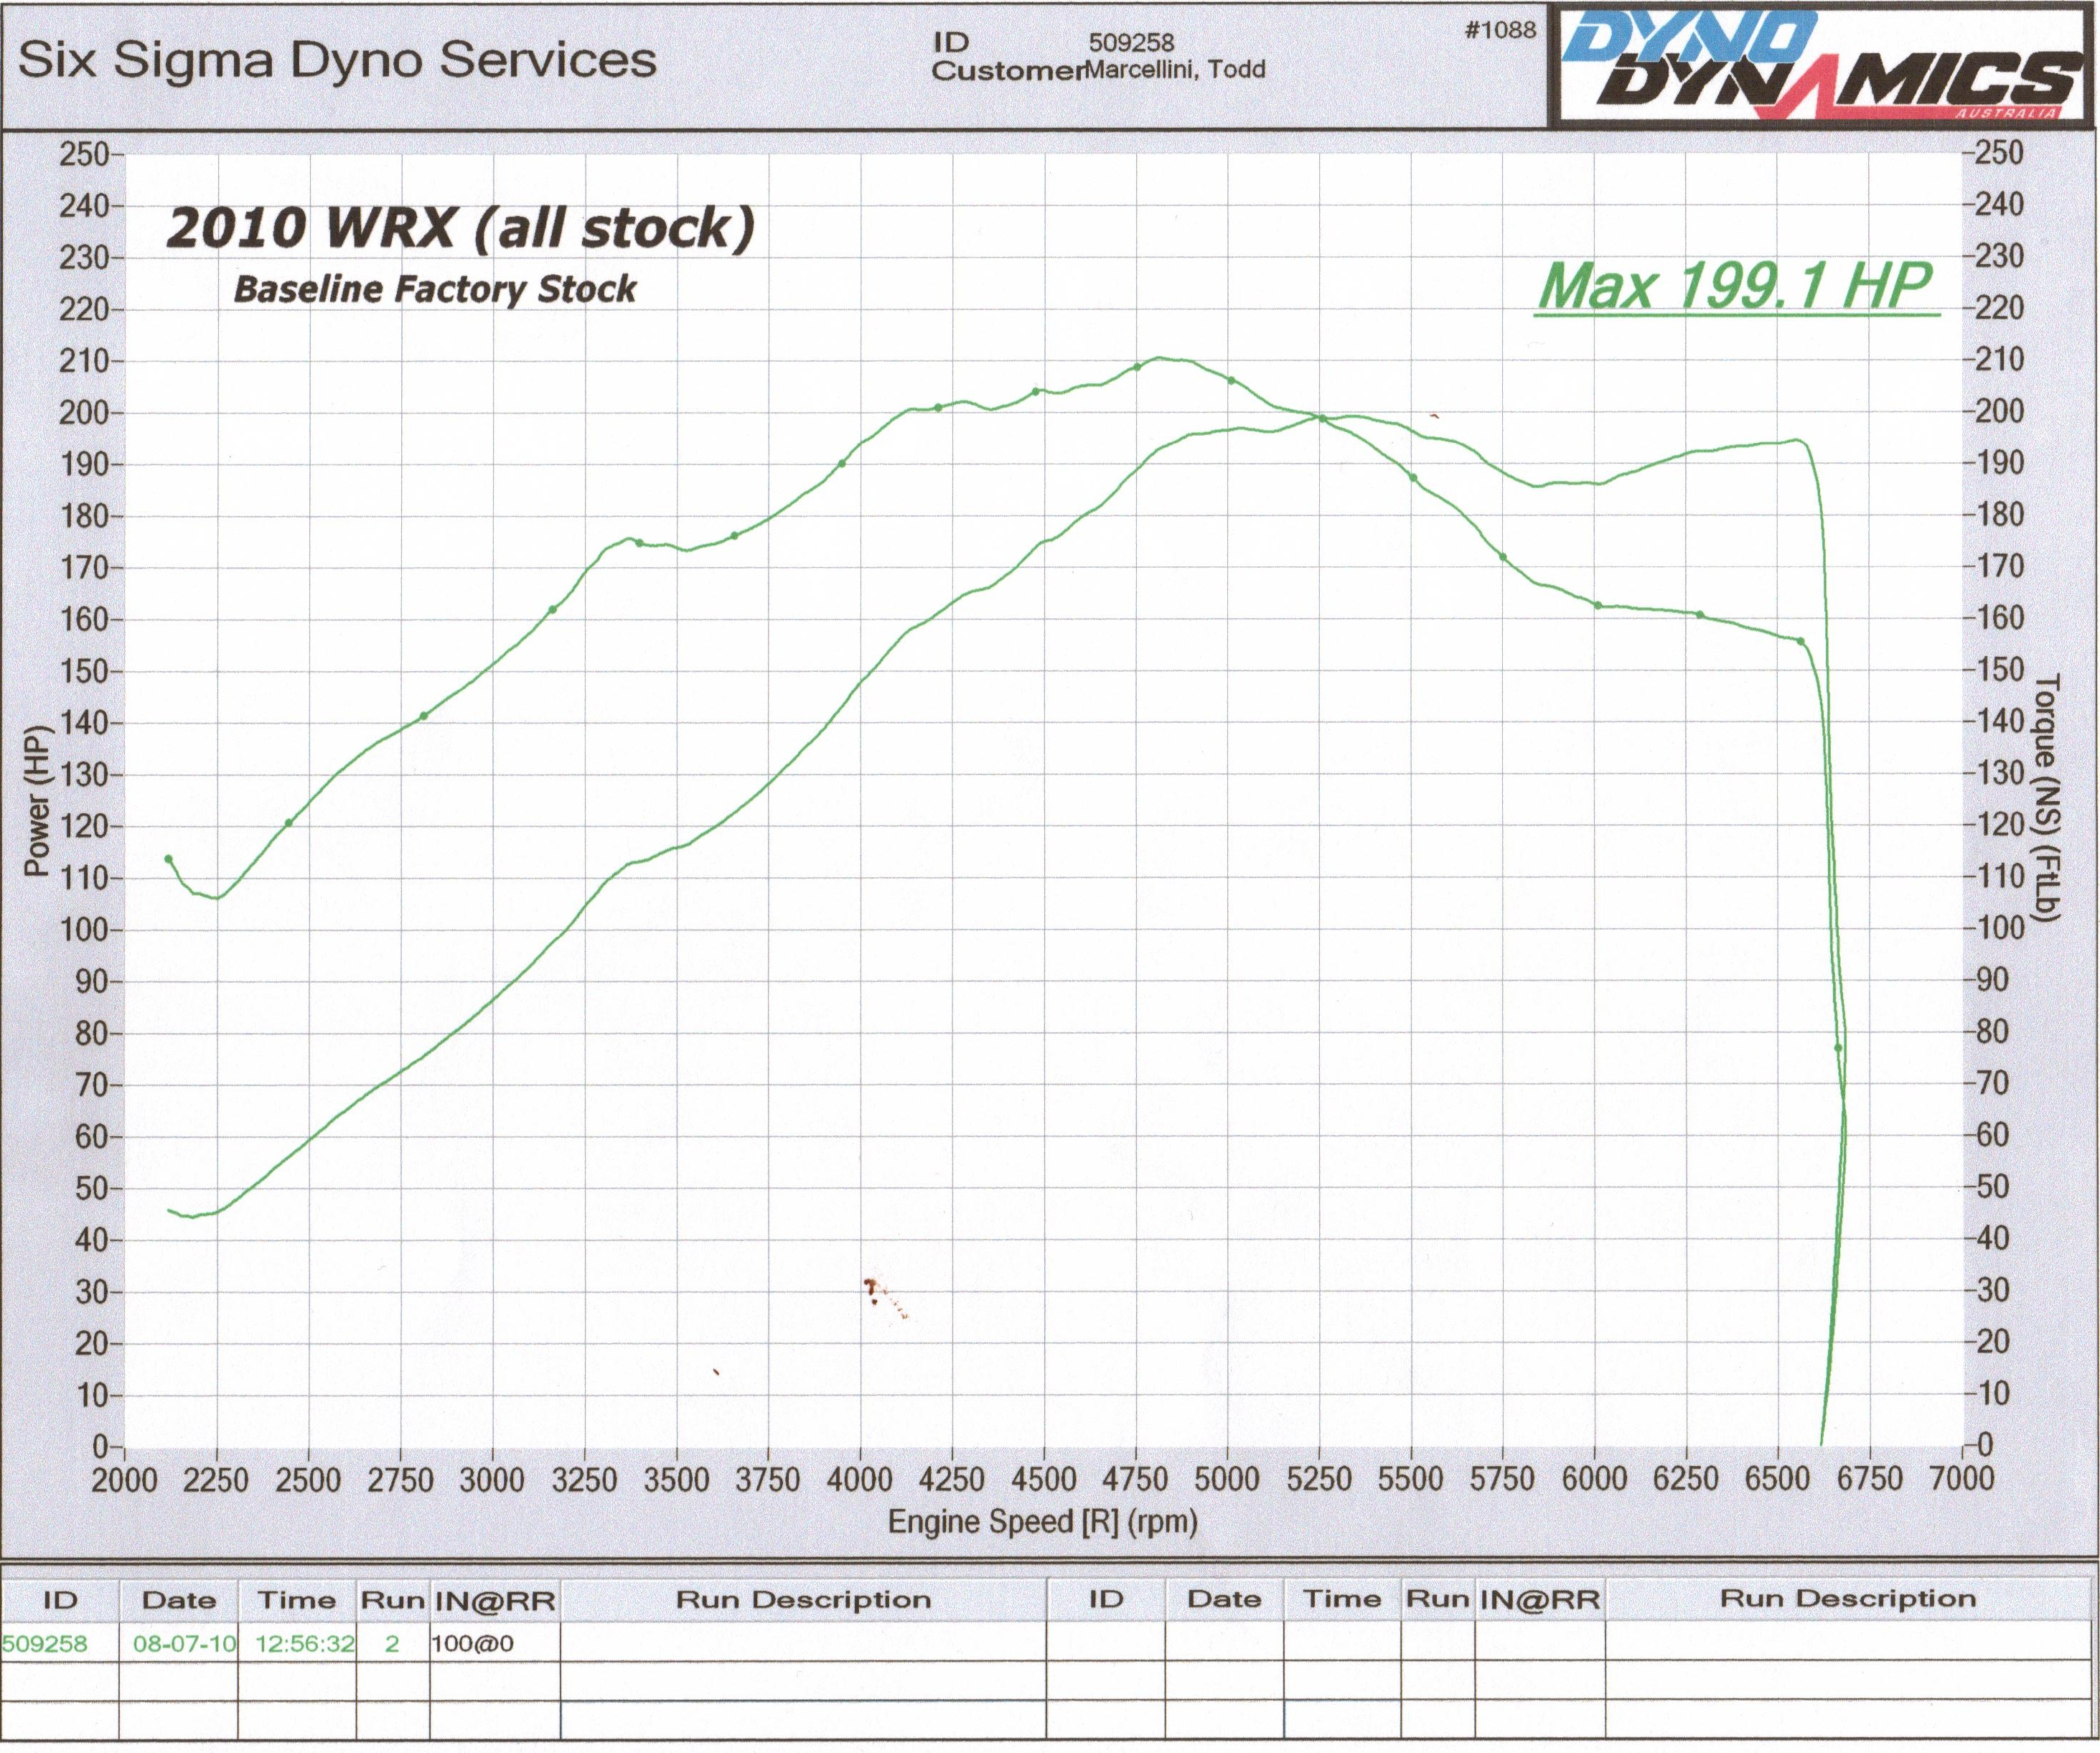 2010 Subaru Impreza Wrx Dyno Results Graphs Hosepower